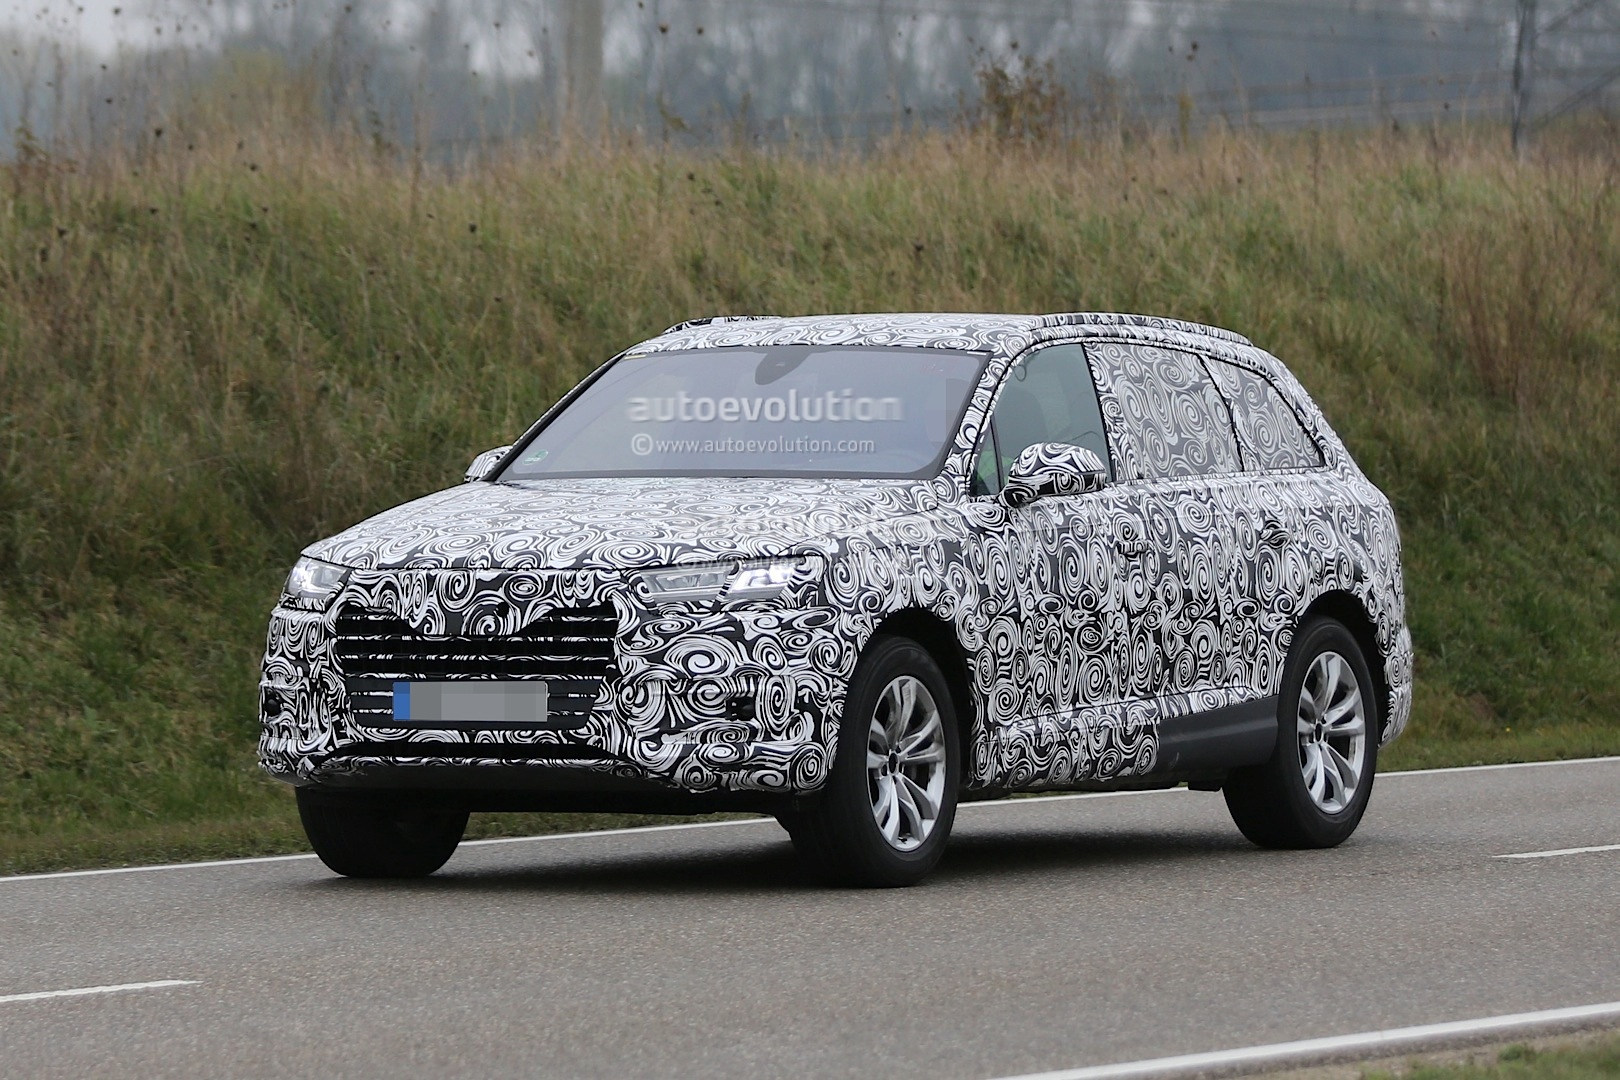 http://s1.cdn.autoevolution.com/images/news/gallery/2016-audi-q7-spied-with-matrix-led-headlights-for-first-time_2.jpg